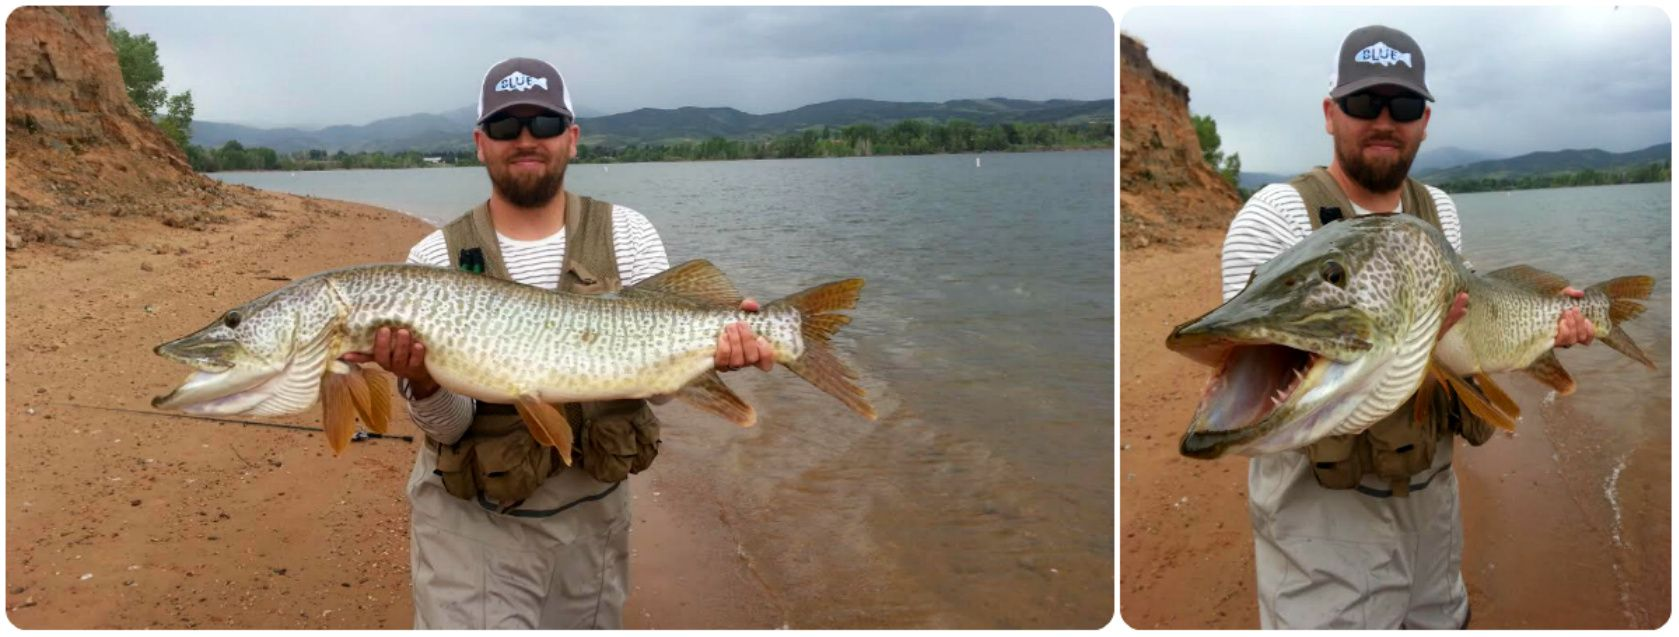 Tiger muskie in pineview reservoir fishing pinterest for Tiger muskie fishing